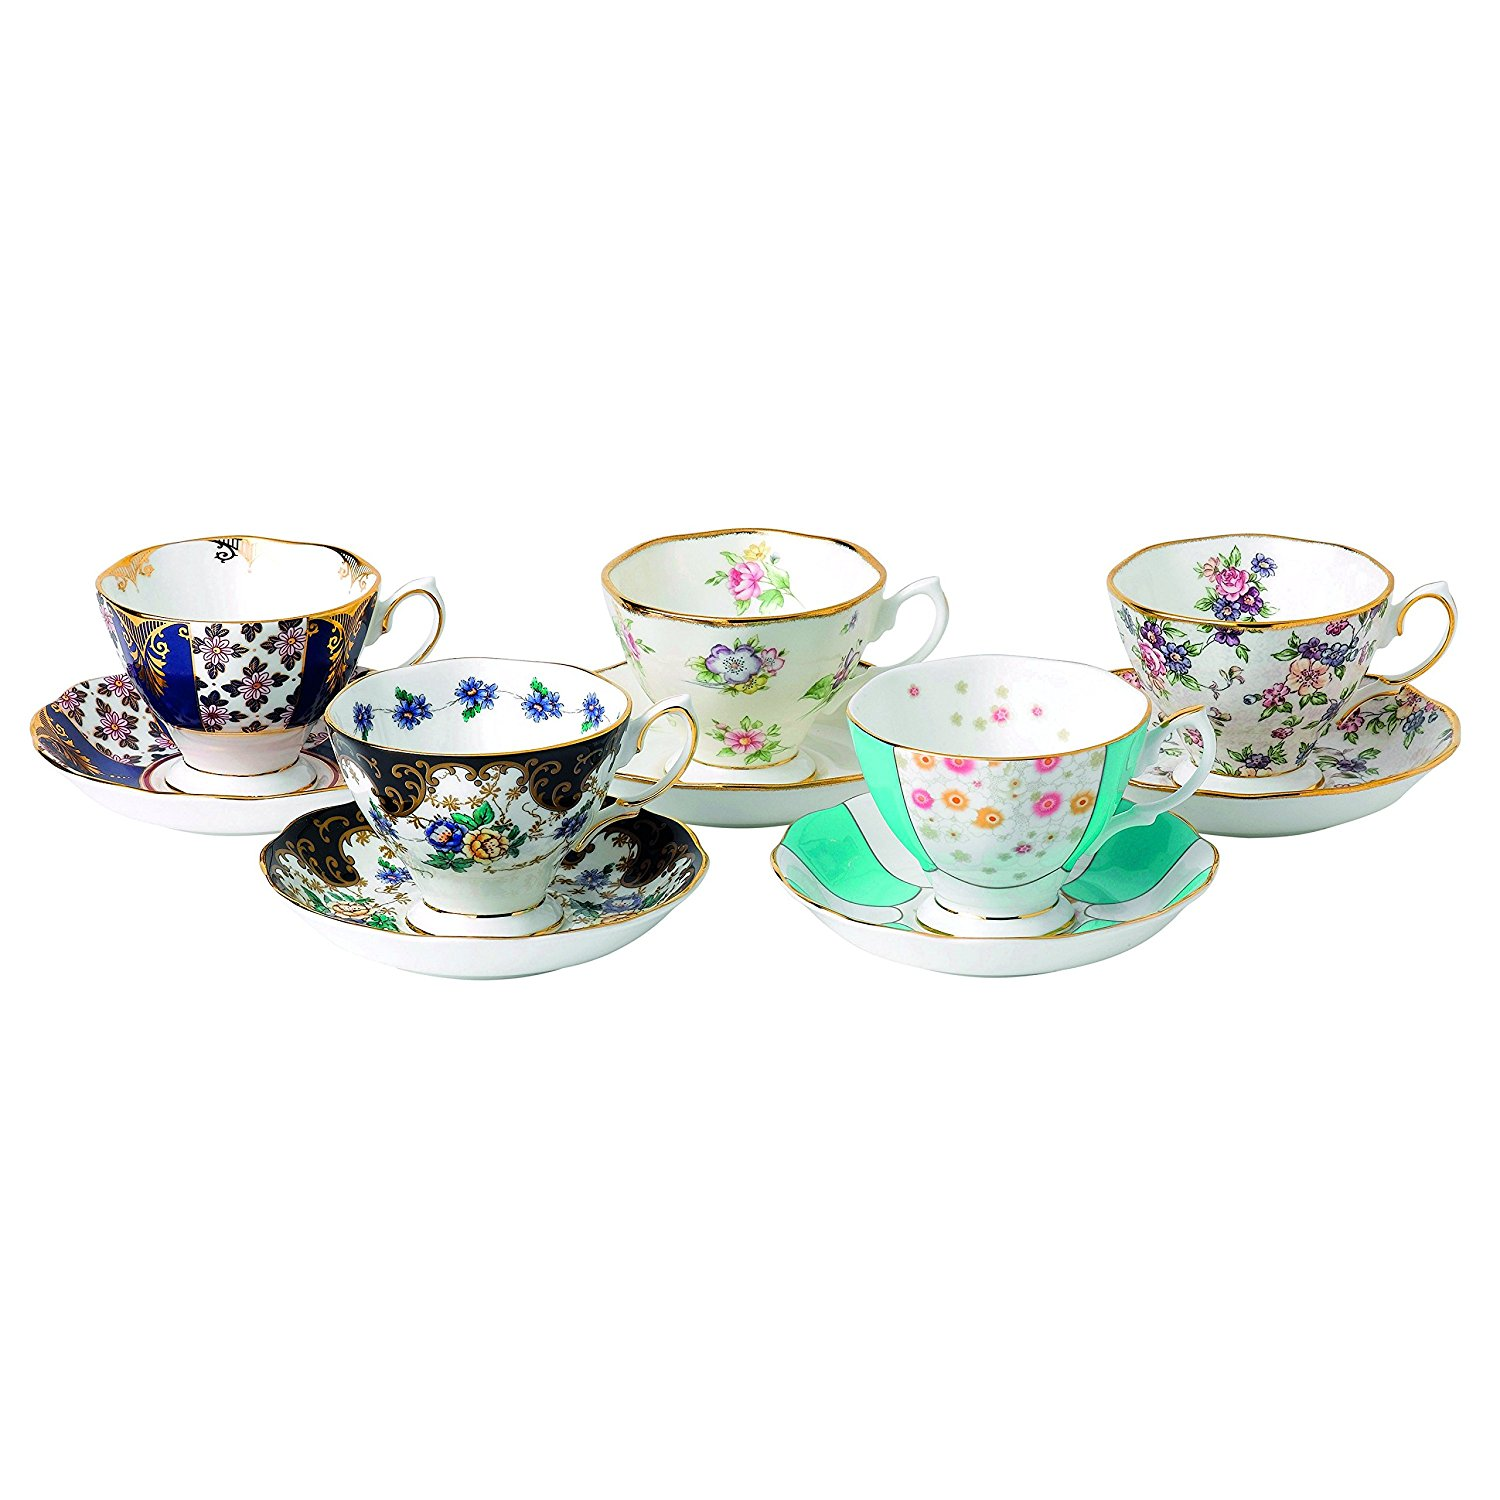 Royal Albert 5 Piece 100 Years 1900-1940 Teacup & Saucer Set, Multicolor